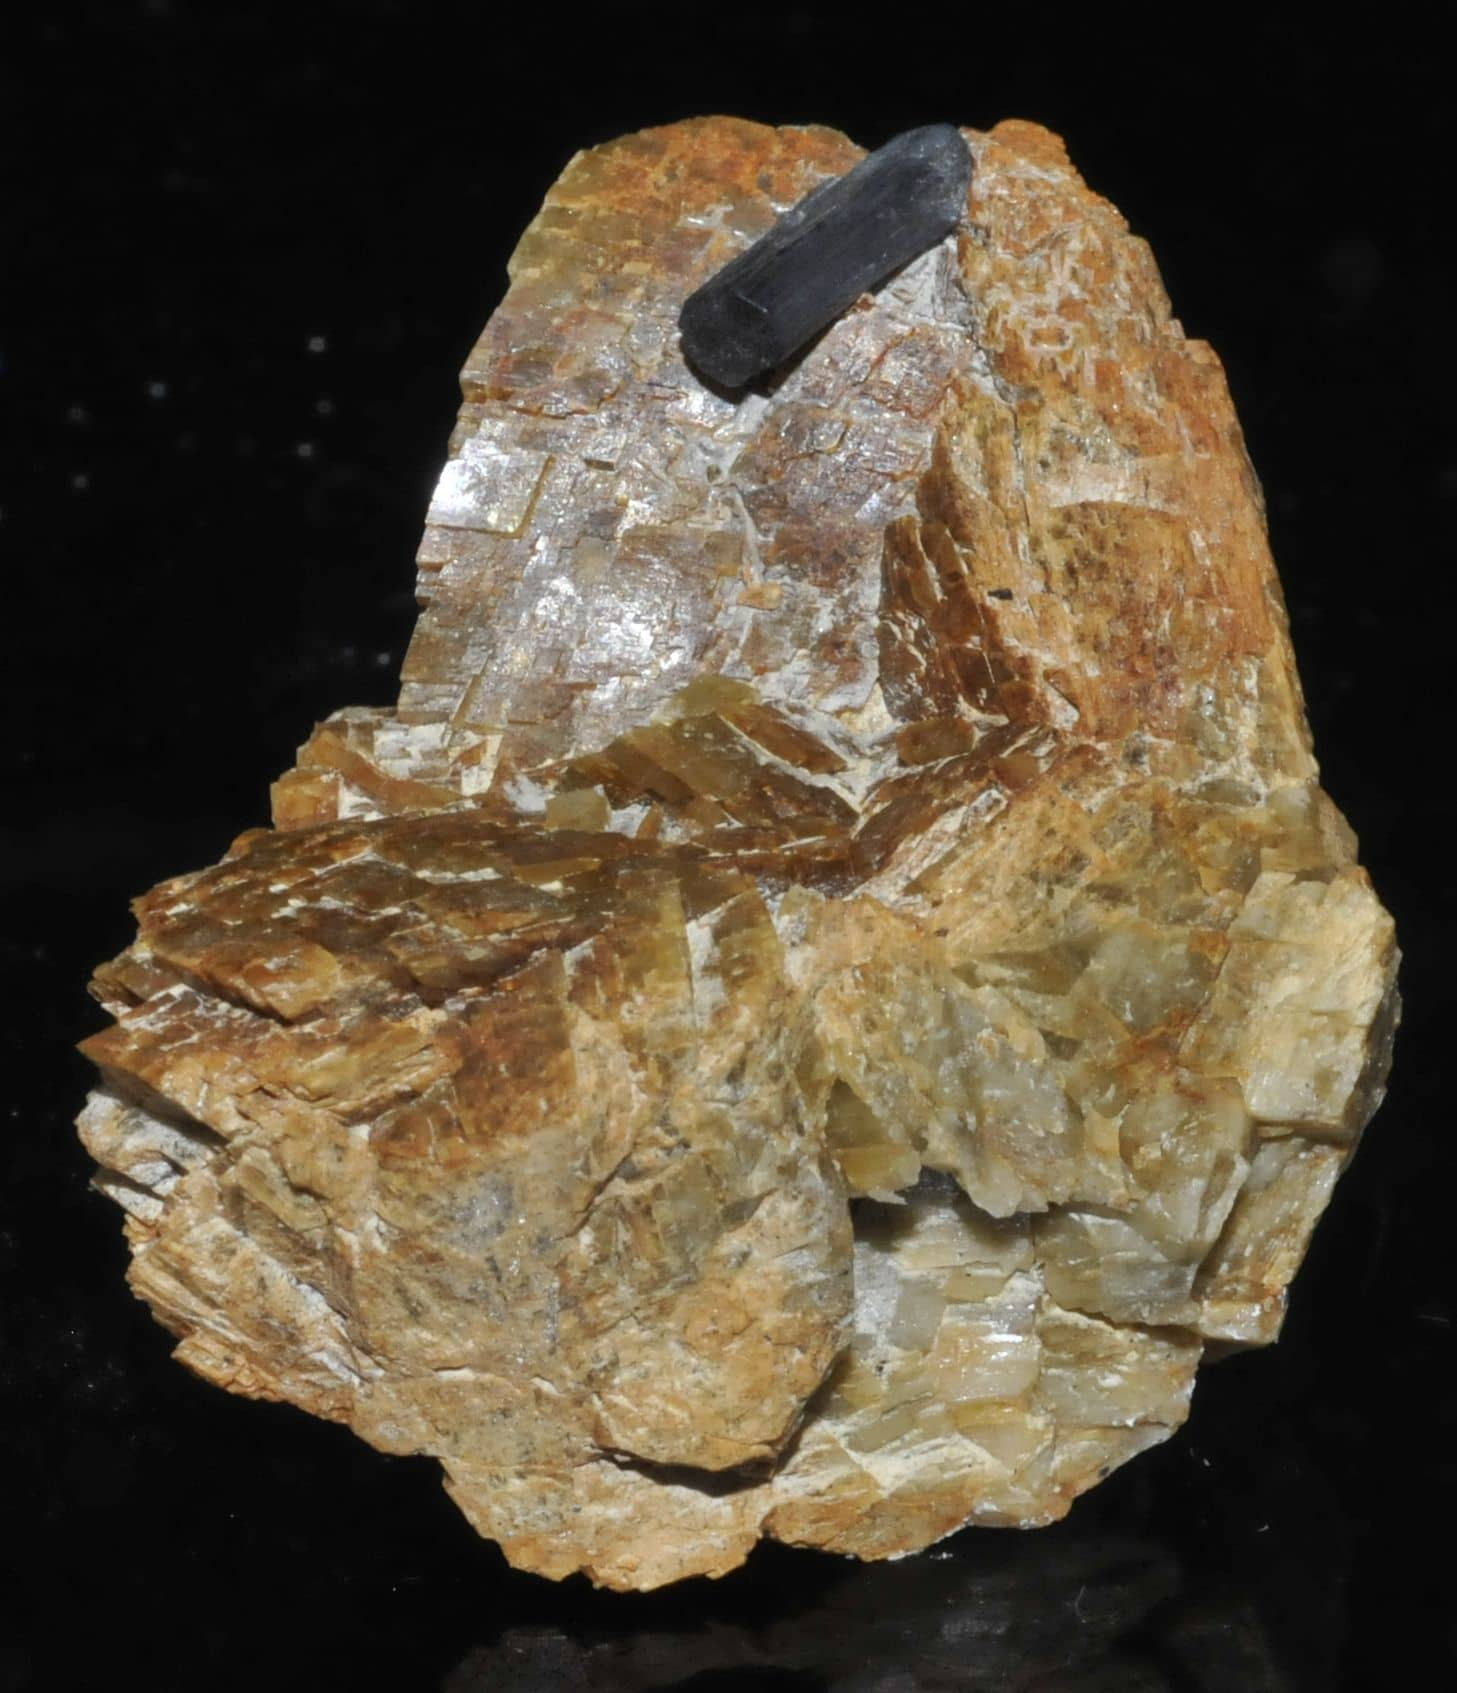 Bournonite on siderite from Saint-Pons (Alpes-de-Haute-Provence, France)